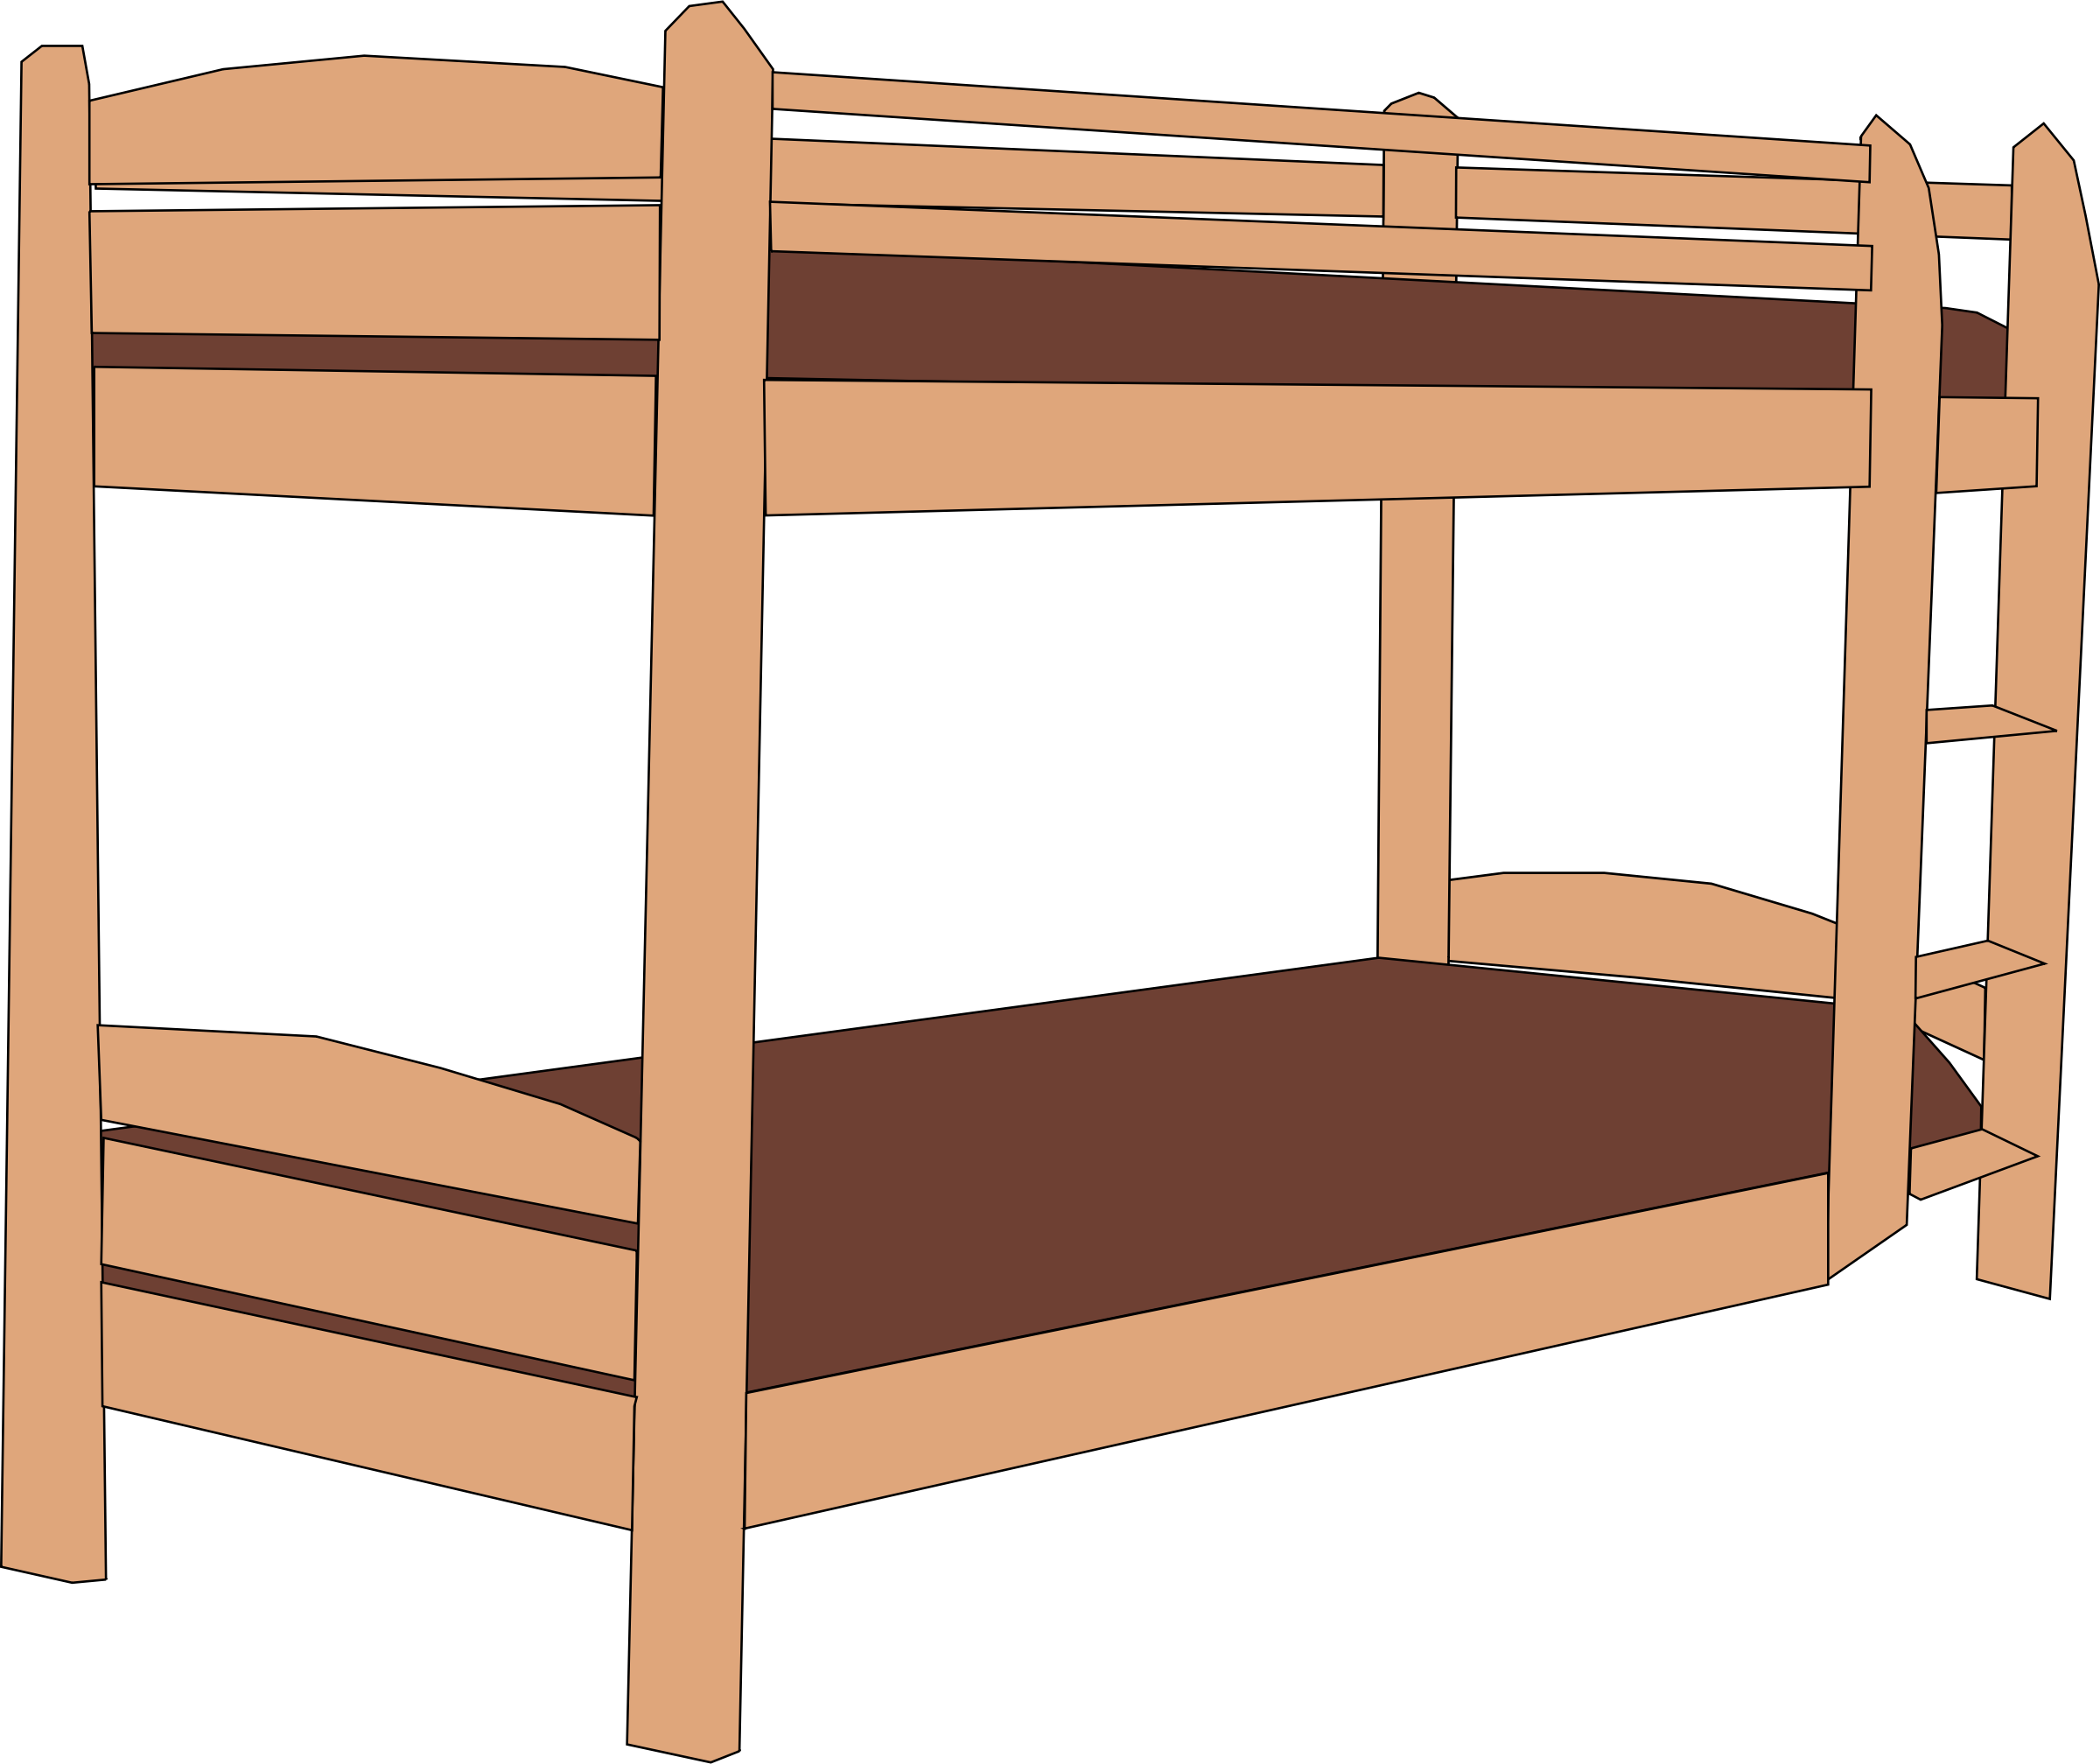 Drawing bed animated. Cartoon pictures of beds